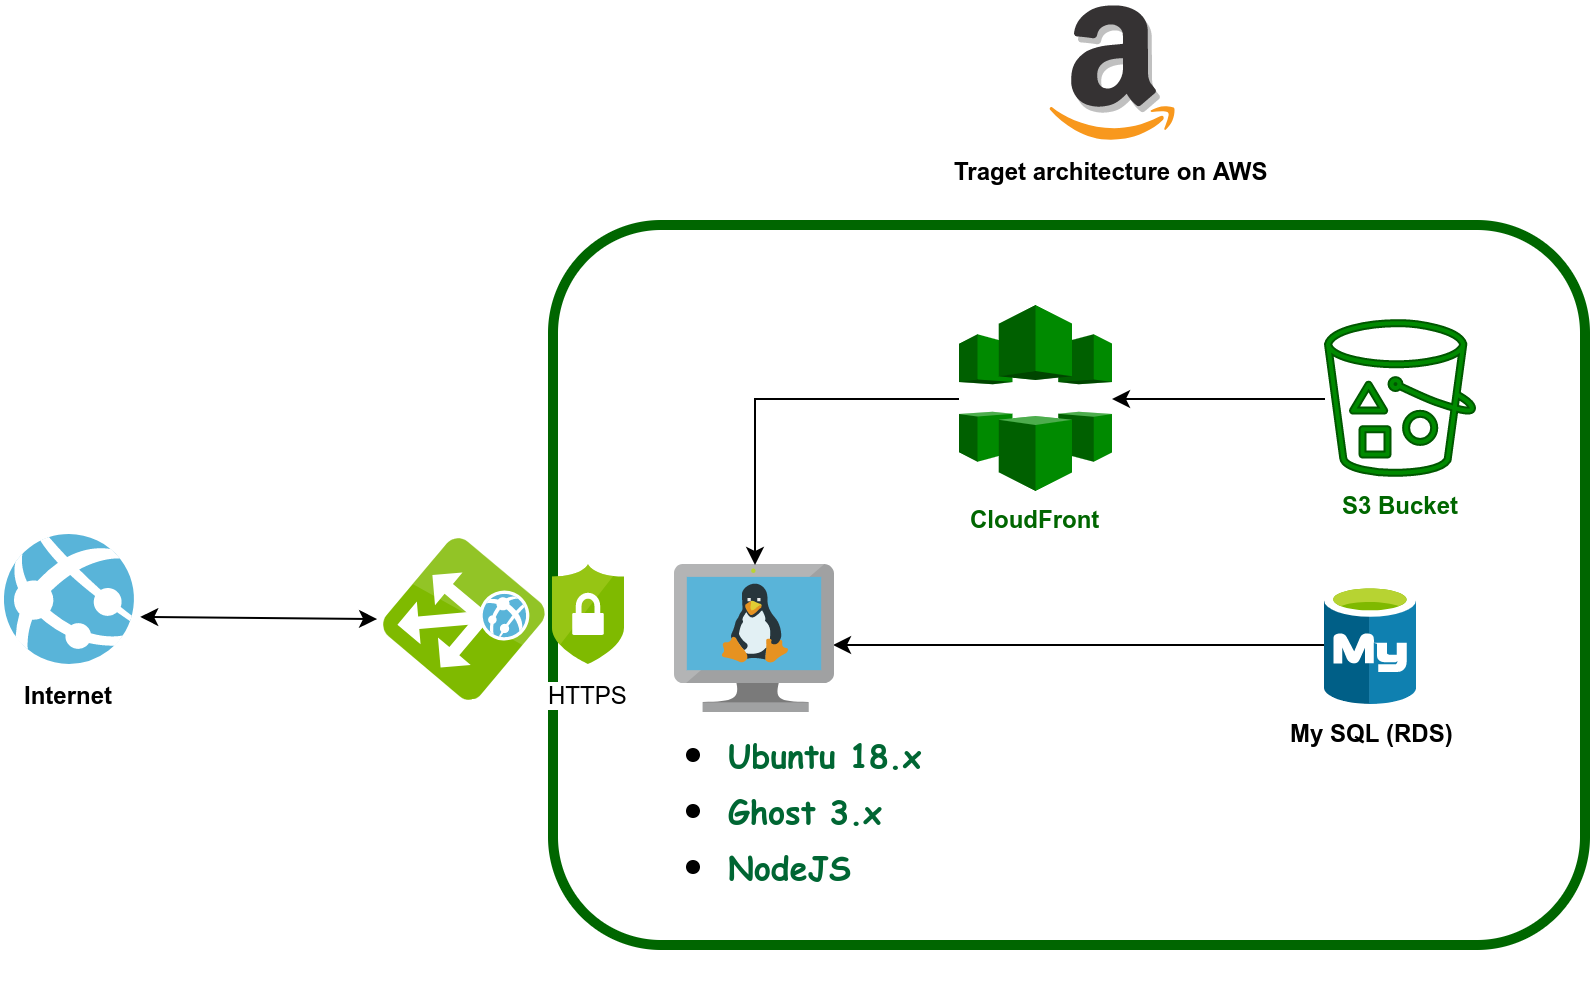 Full architecture on AWS